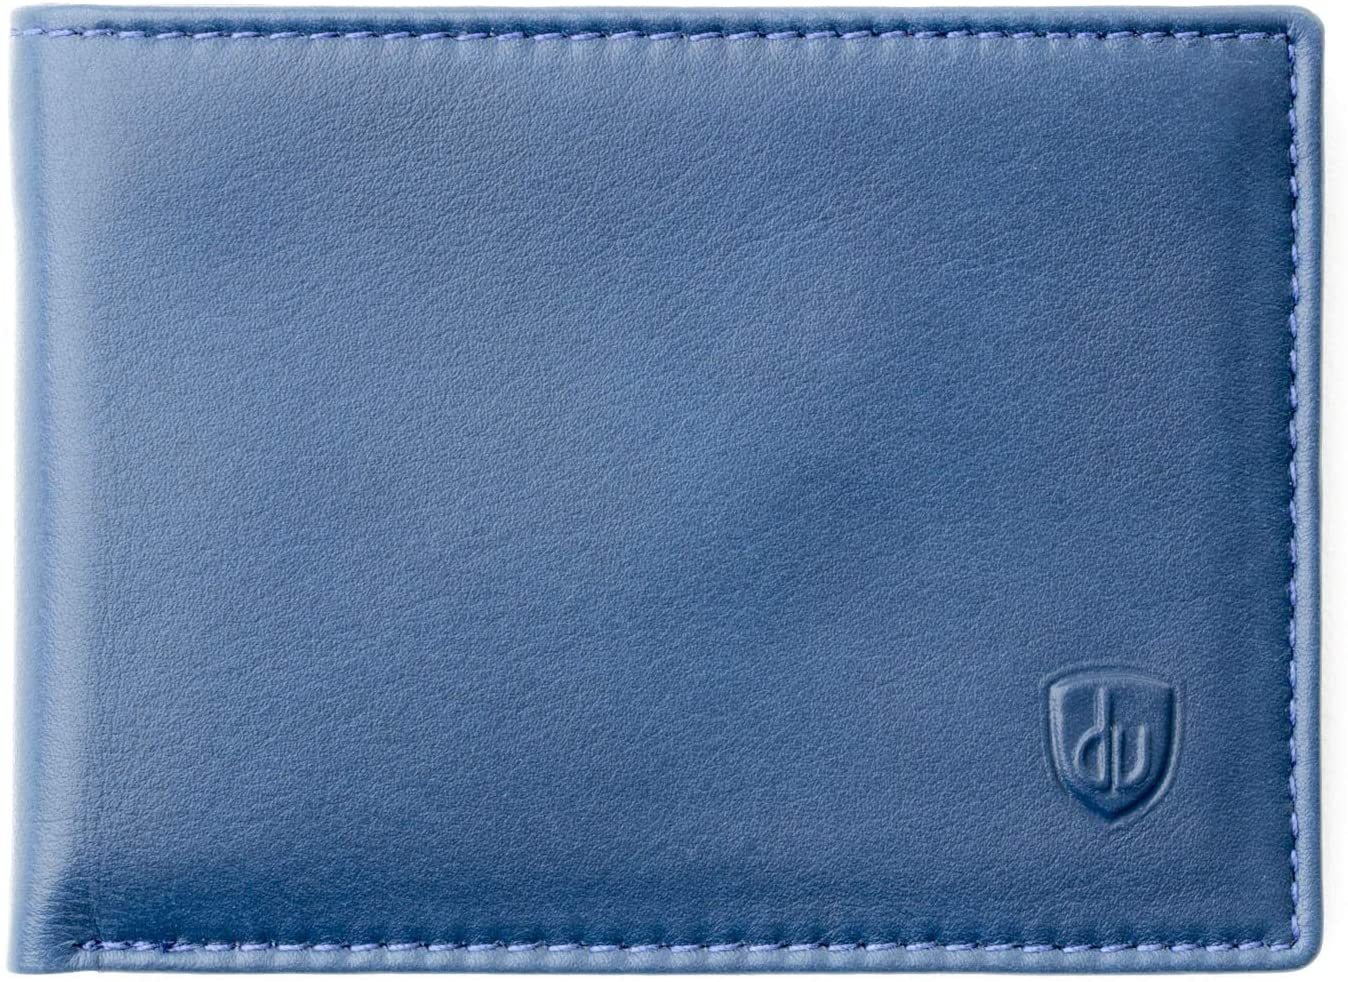 Small & light Mens wallet in Real Nappa Leather Card & Bill Holders Euro Dollars Money DV Blue